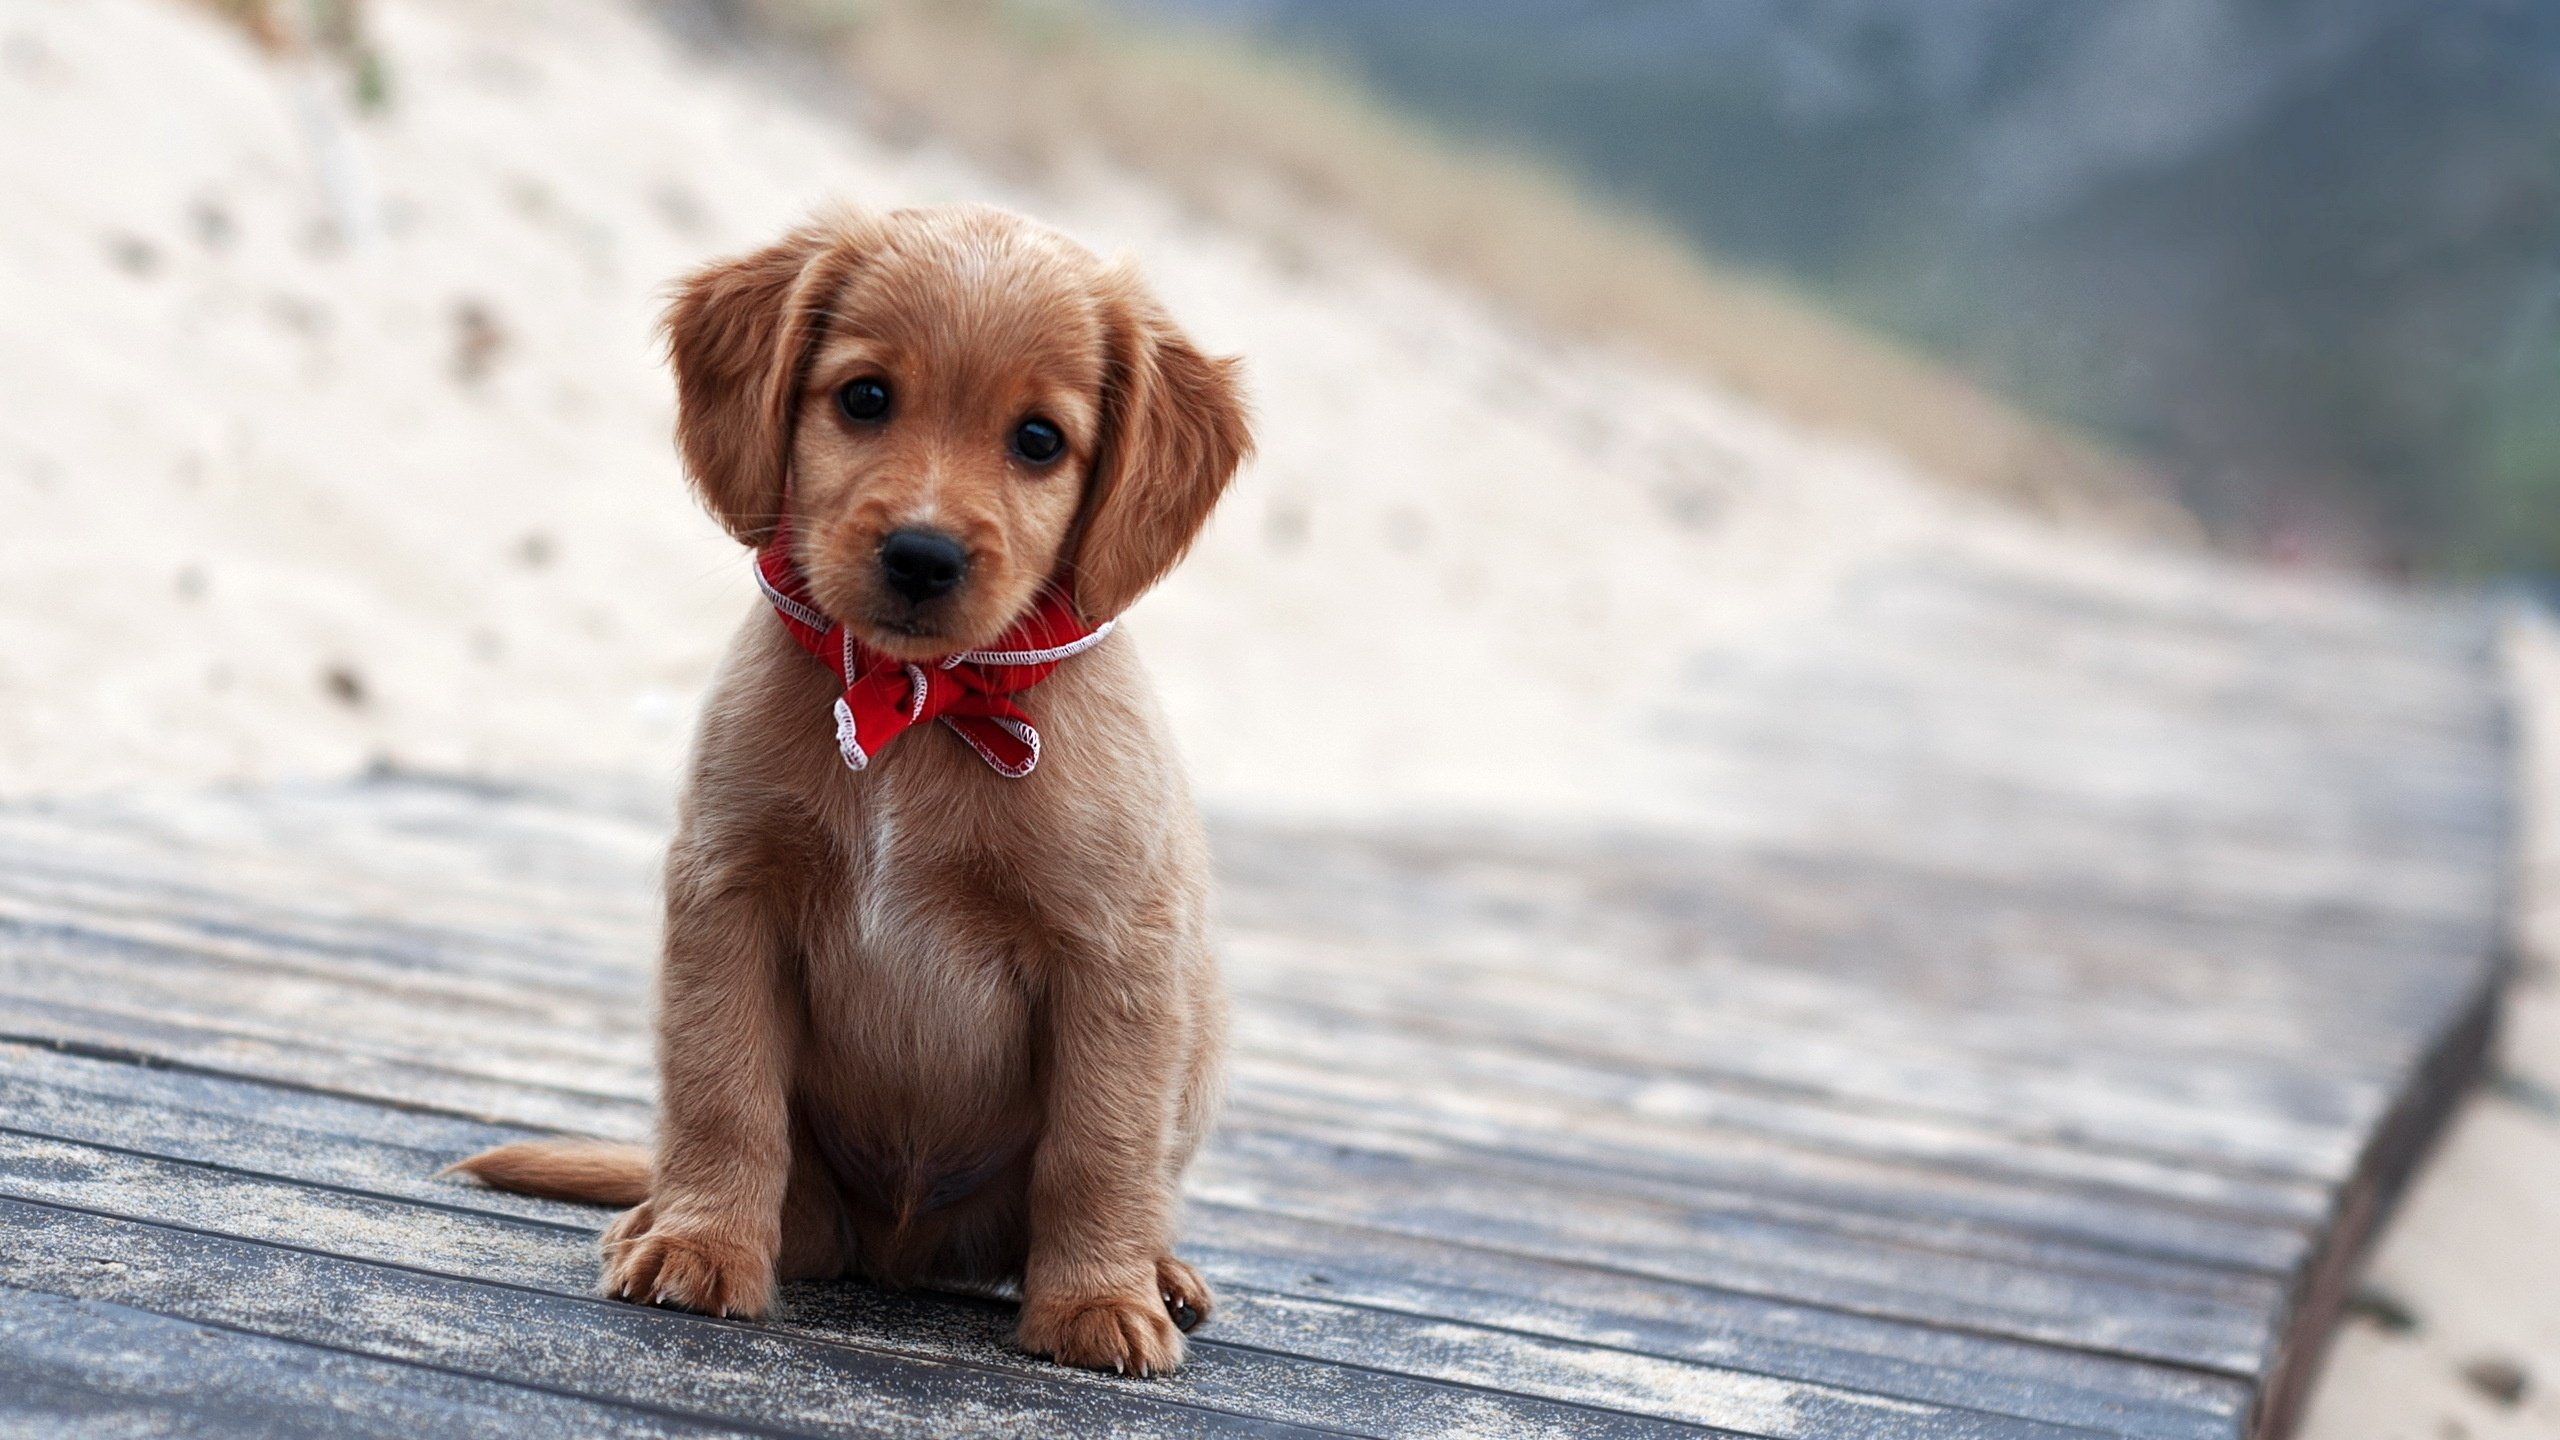 Cute puppy wallpaper wallpapers for free download about (, 2560x1440